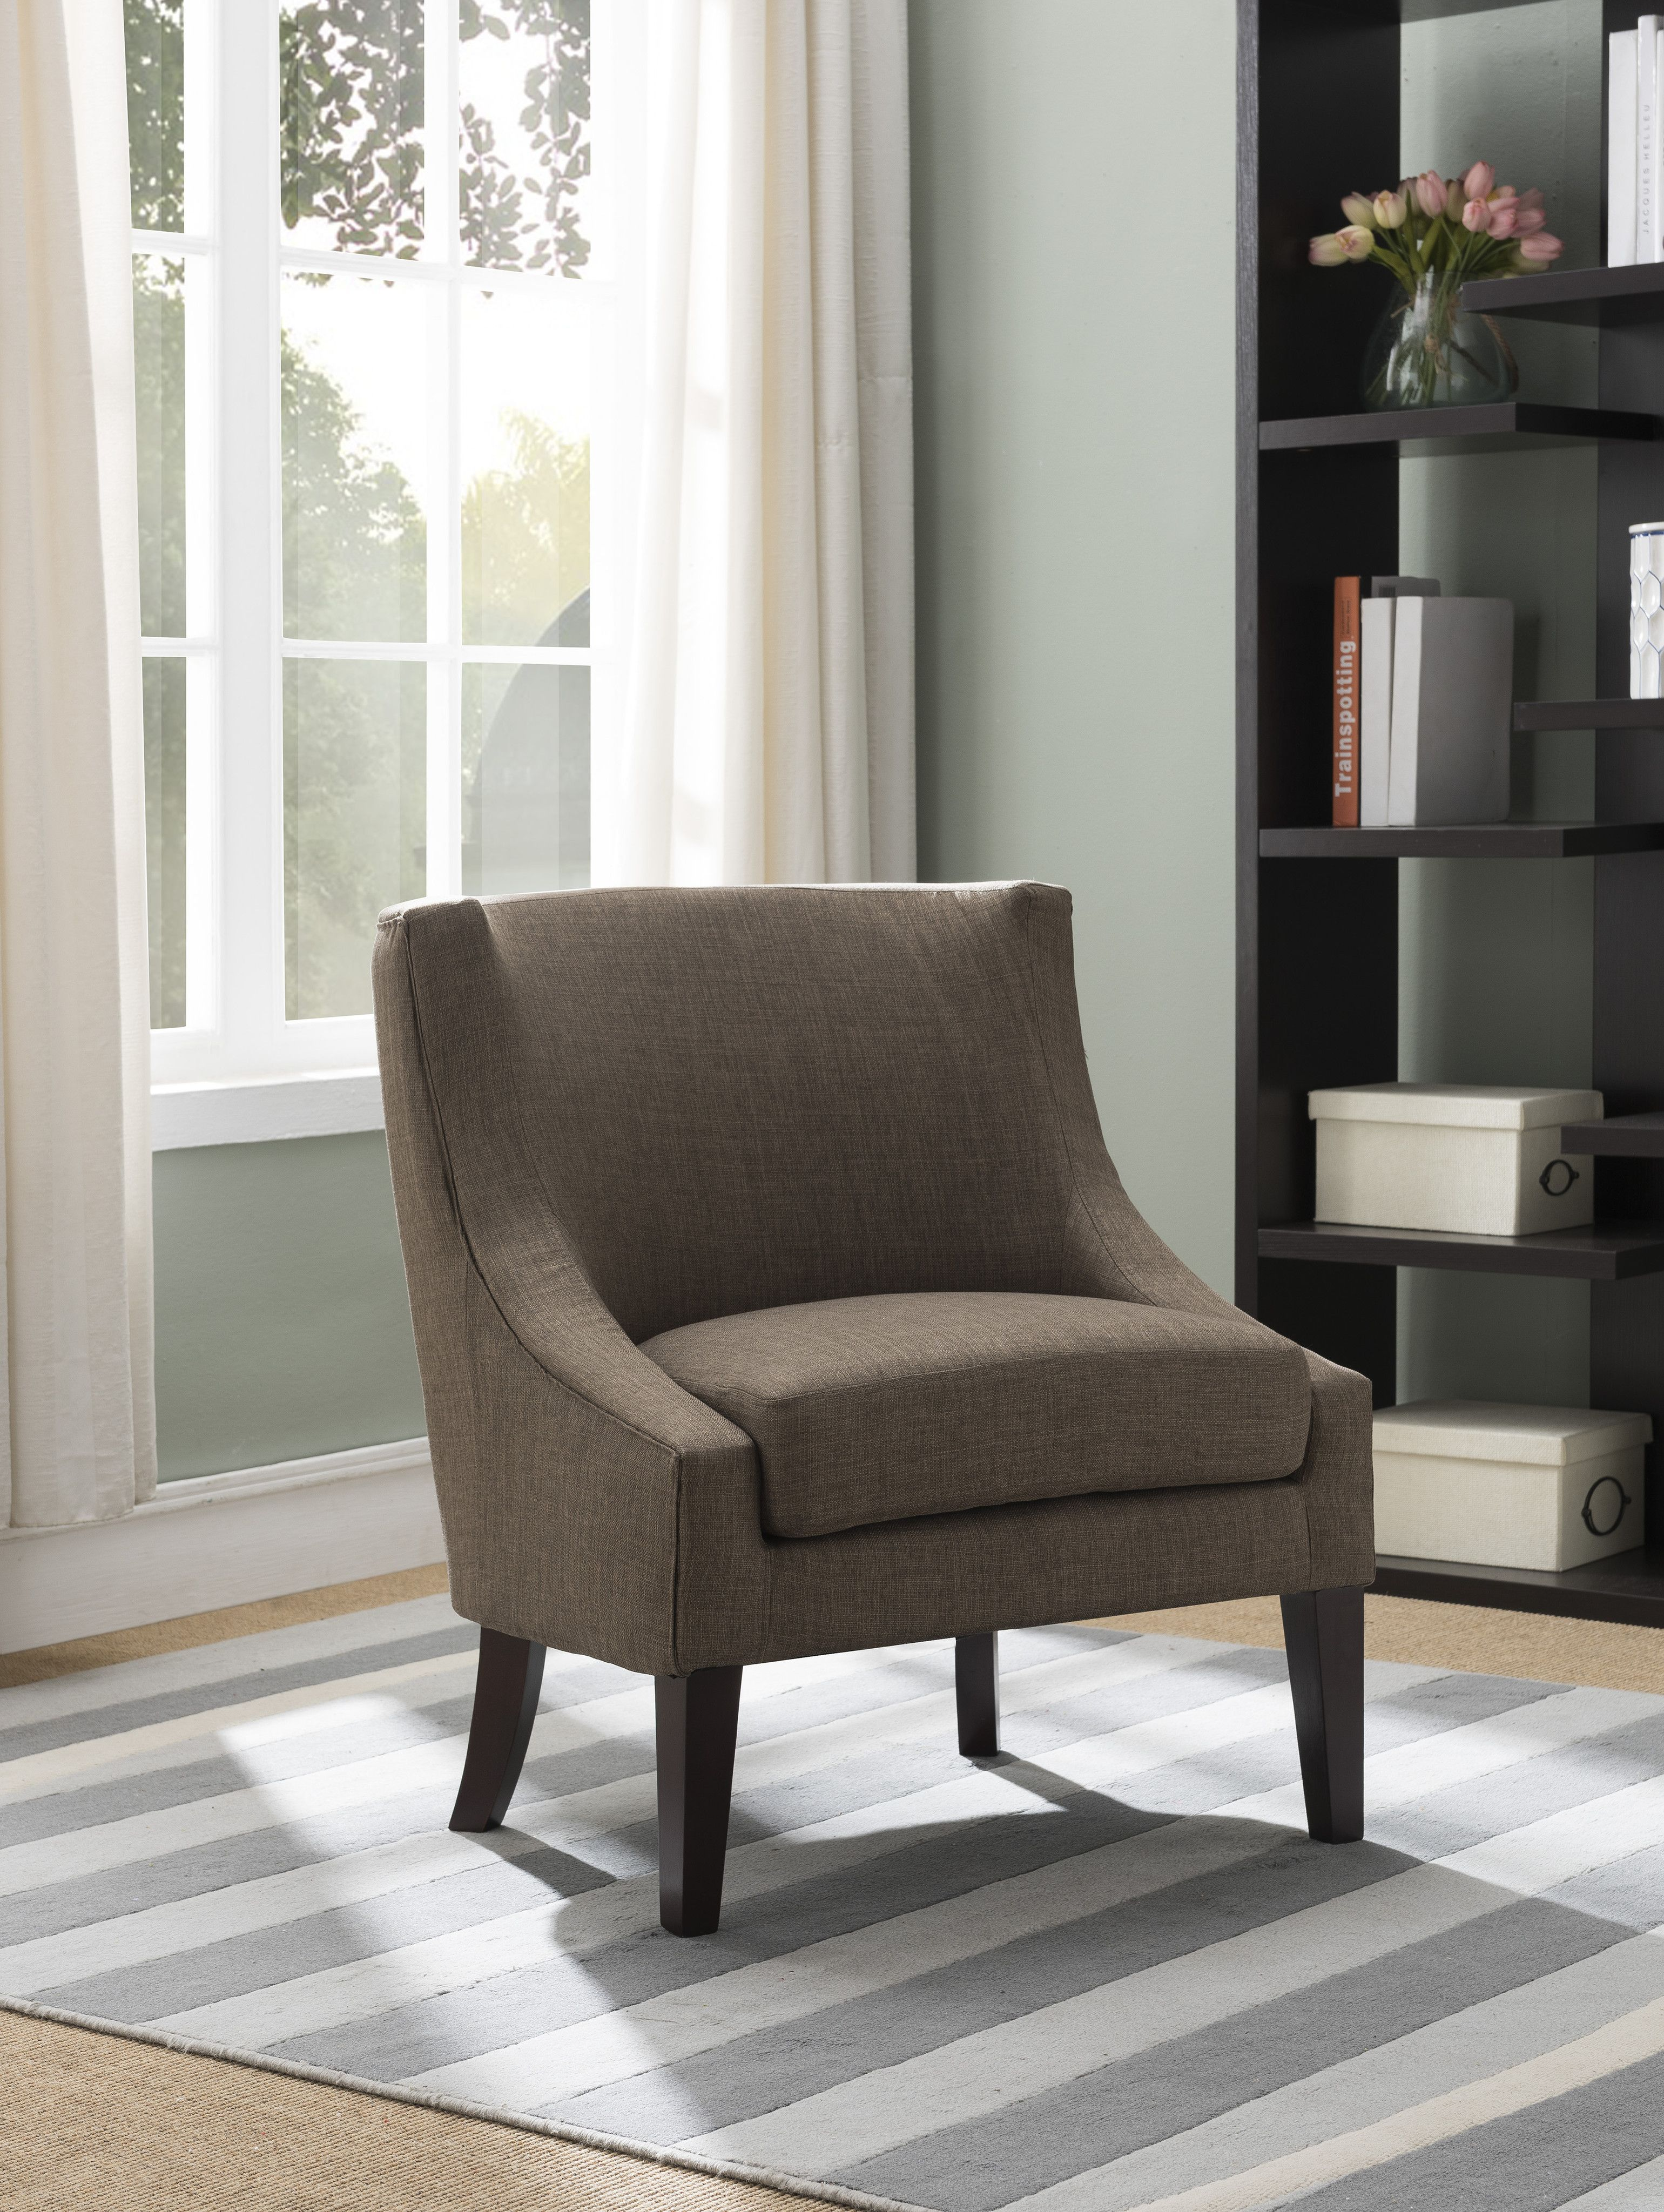 brown upholstered fabric oversized accent living room armless chair rh pinterest com au